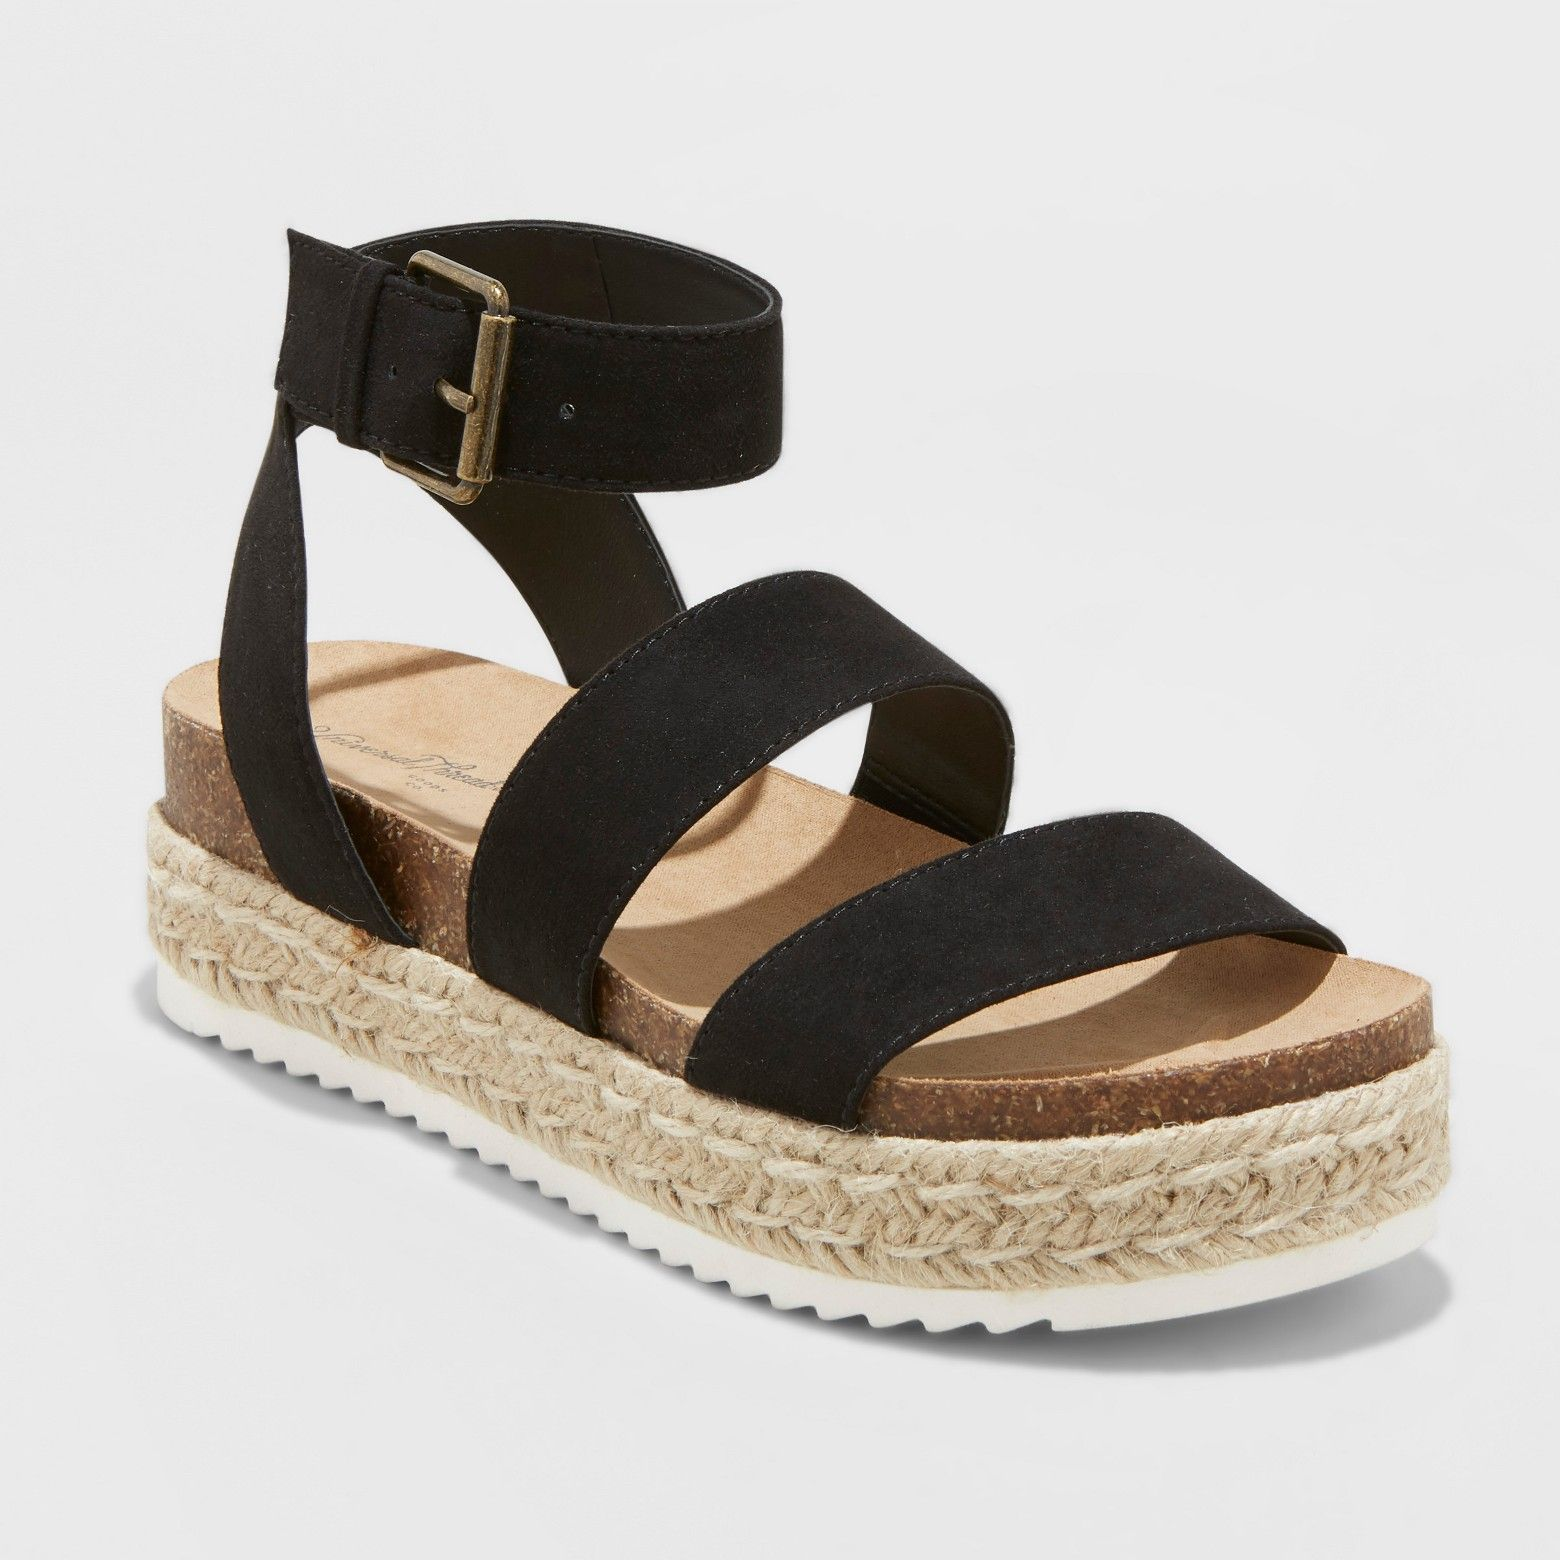 e54eb2bf5a60 Comfort and style come together perfectly in the Agnes Quarter-Strap Espadrille  Sandals. The platform base is wrapped in esparto rope for that classic ...